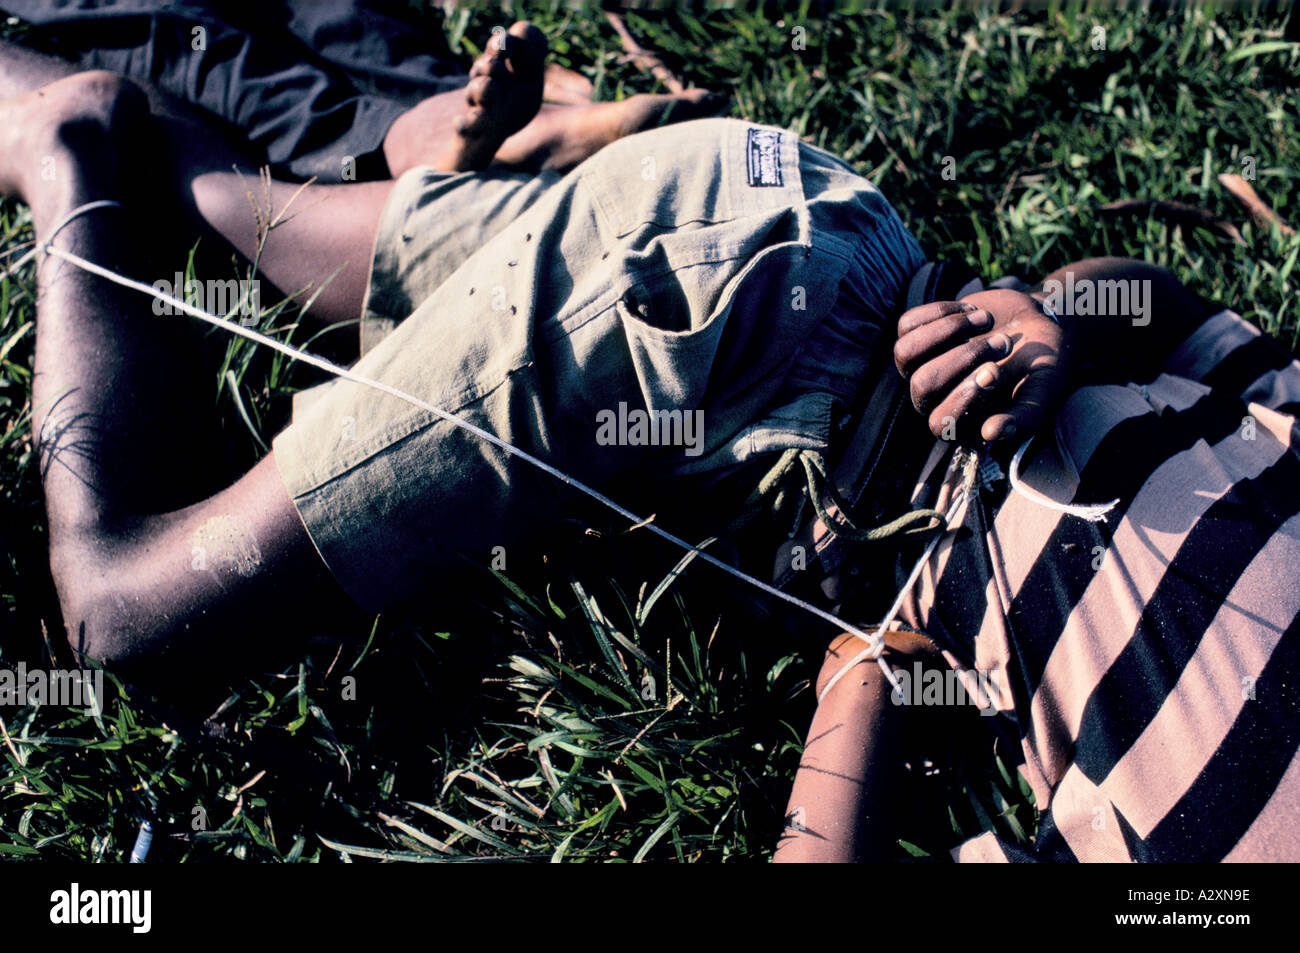 Rio de Janeiro, Brazil.  The bodies of two teenage boys tied up and dumped in a field had been murdered the night before. - Stock Image